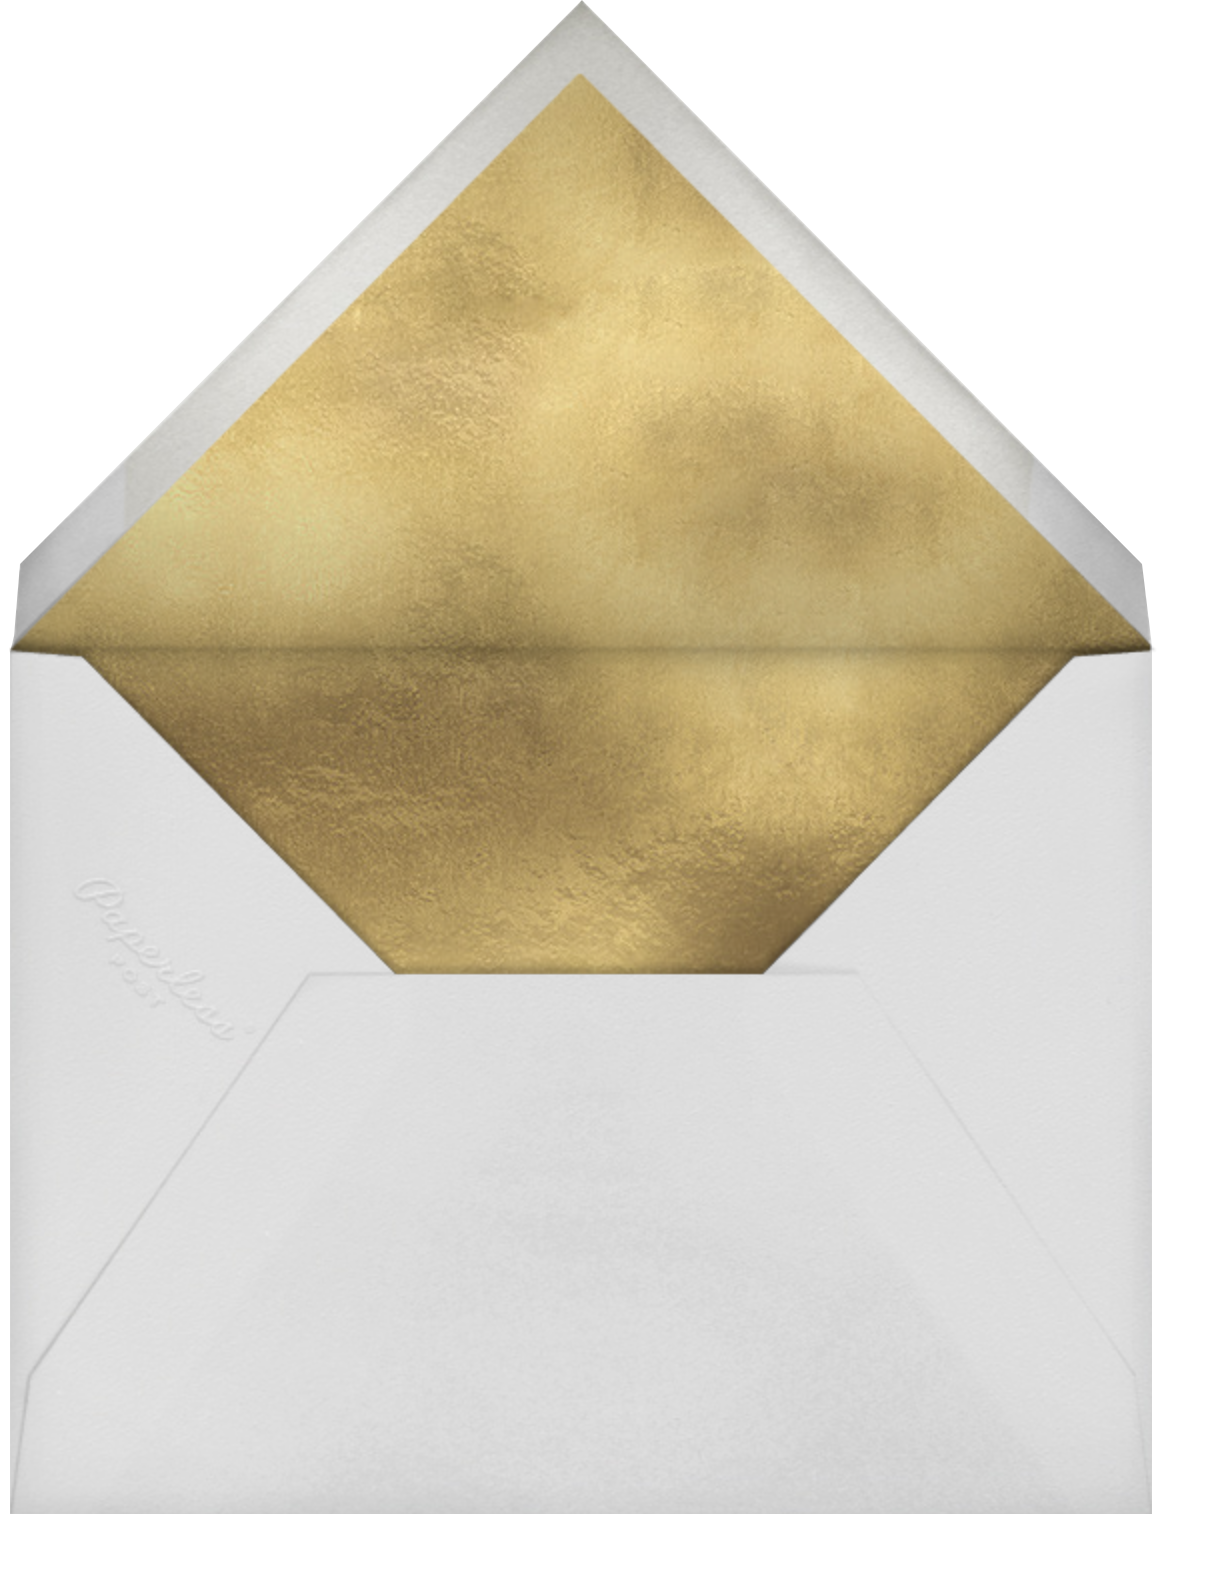 Winter Trees - Gray Malin - Company holiday party - envelope back